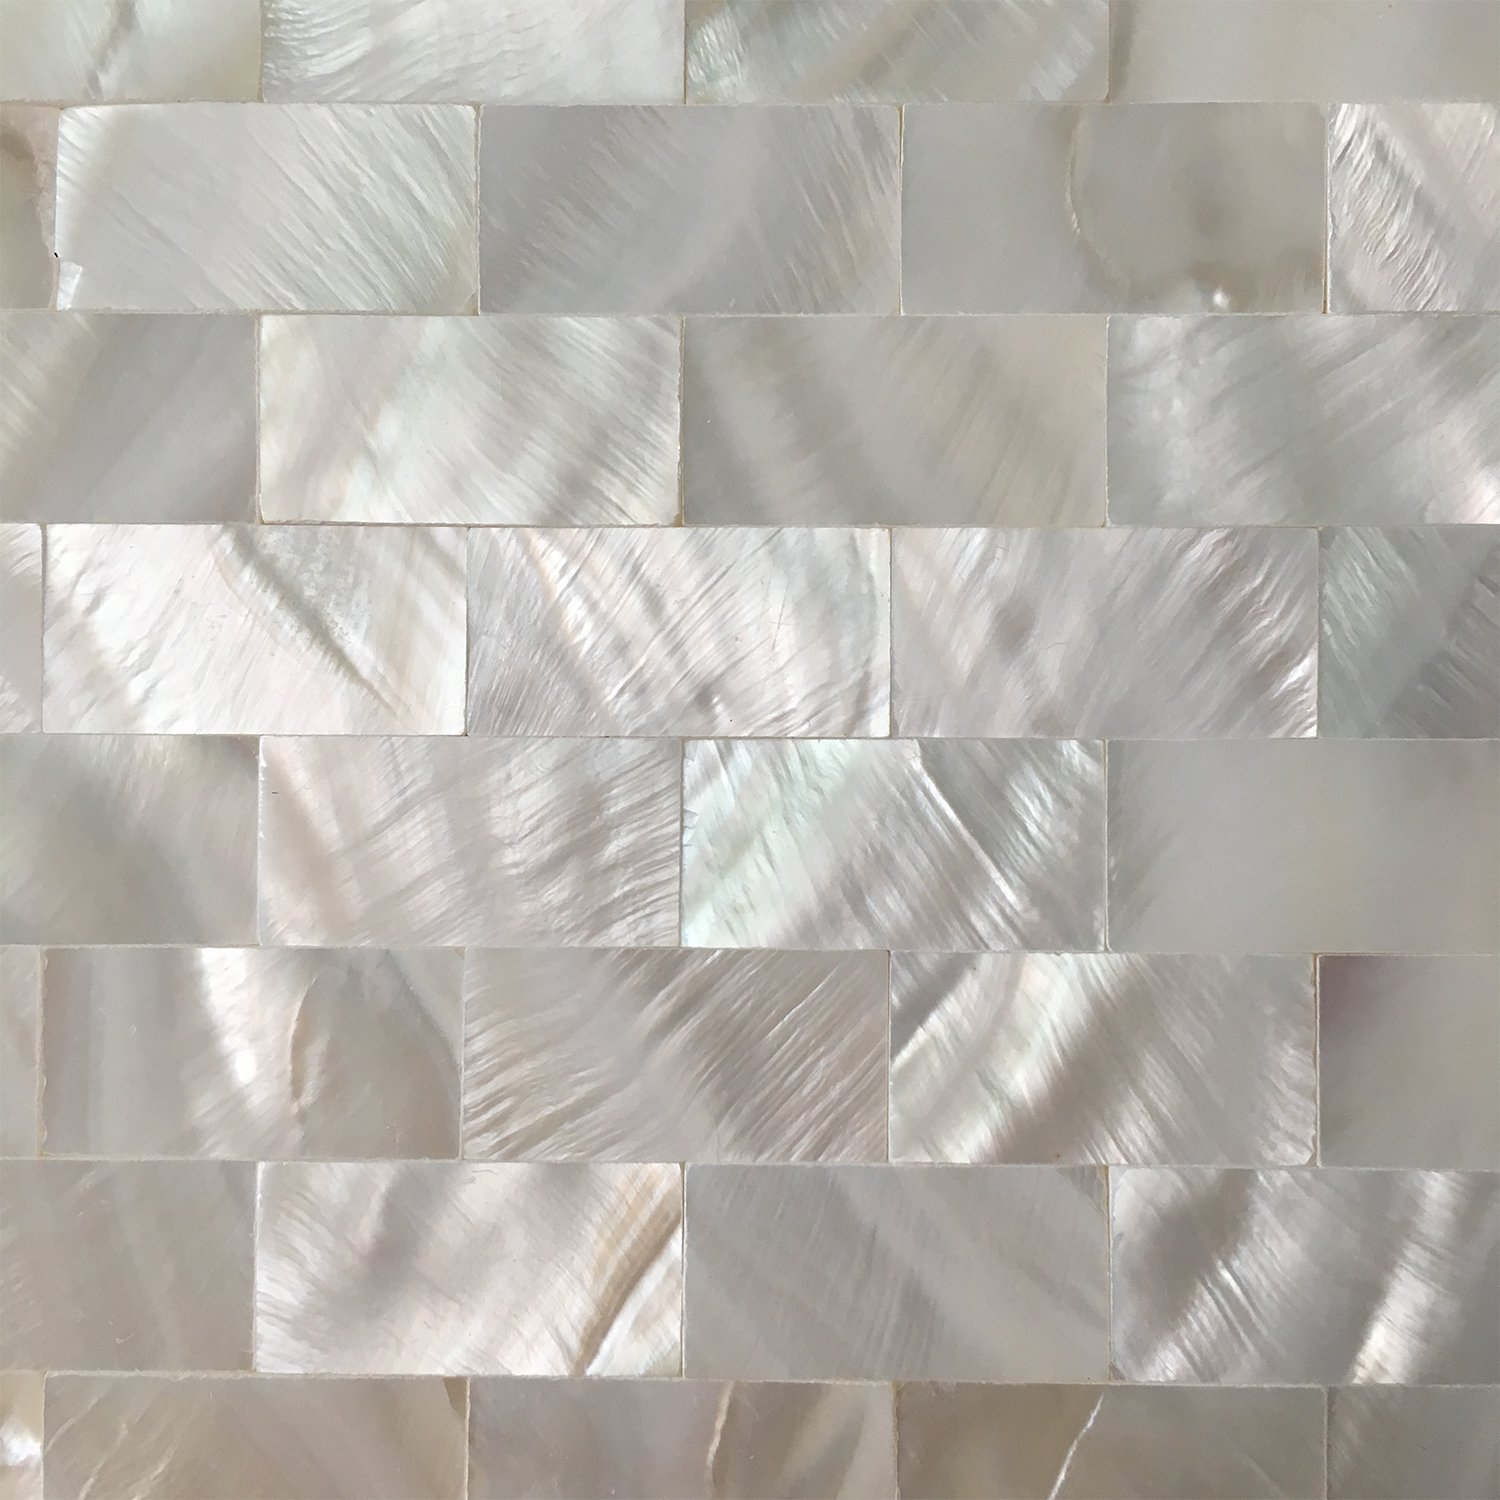 Mother of pearl tile the tile home guide mother of pearl tile dailygadgetfo Image collections